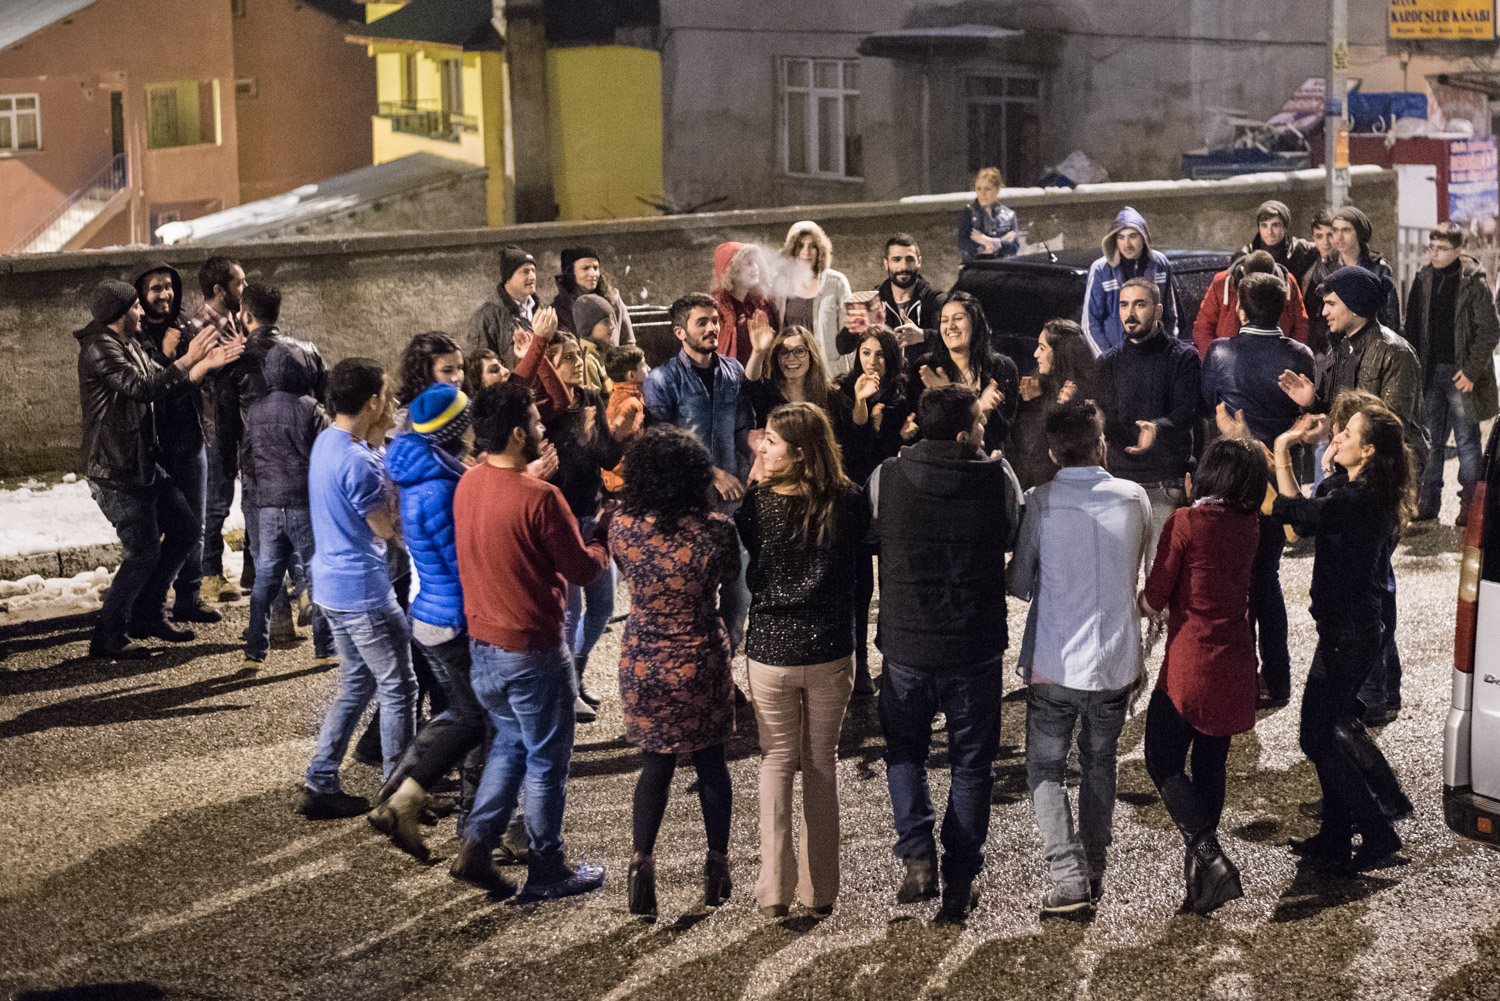 Dancing in the street in Ovacik at midnight on New Years Eve, welcoming 2015.